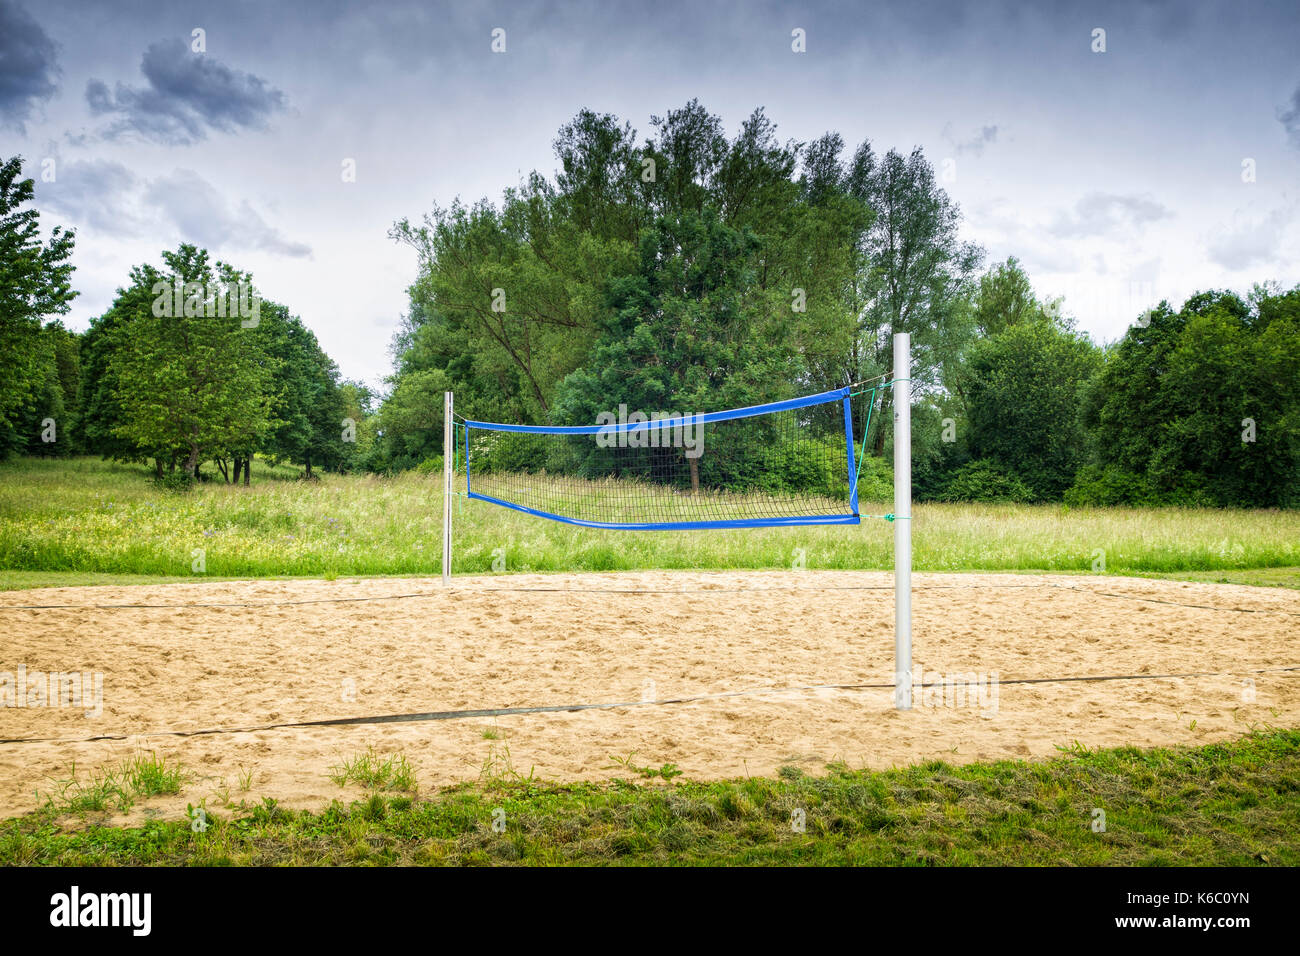 Beach Volleyball court in the Countryside - Stock Image